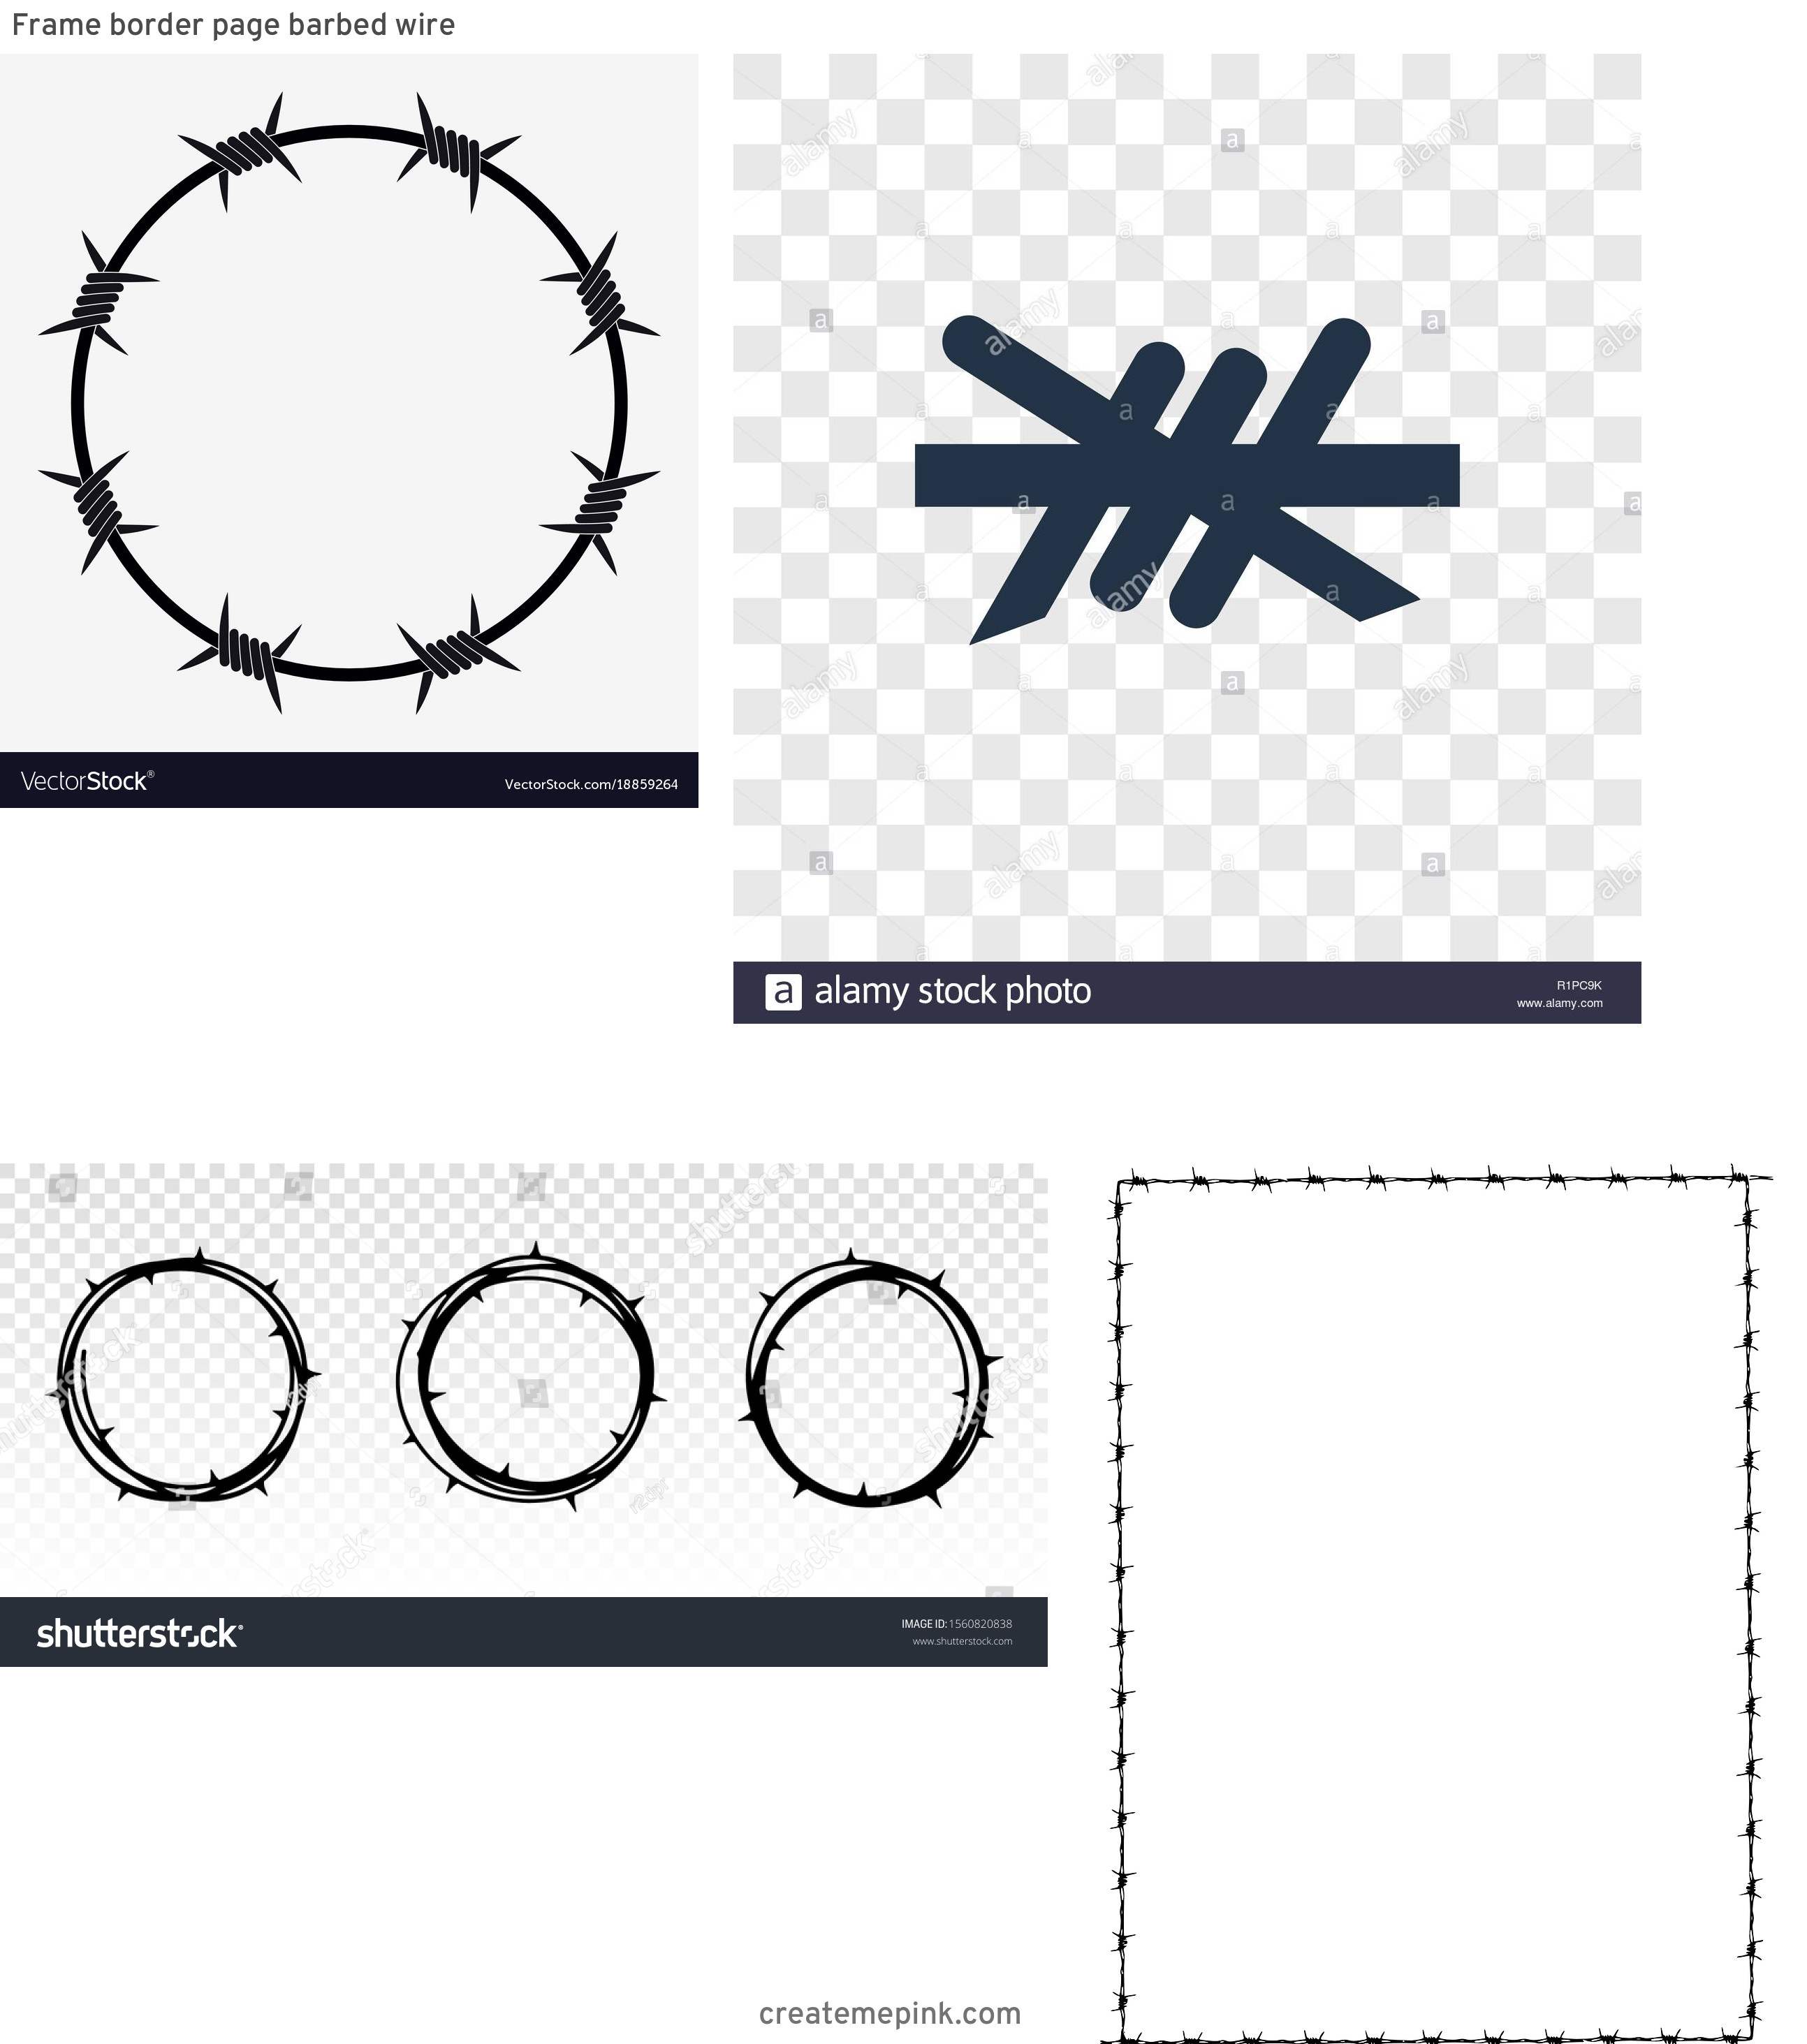 Barb Wire Wreath Vector: Frame Border Page Barbed Wire